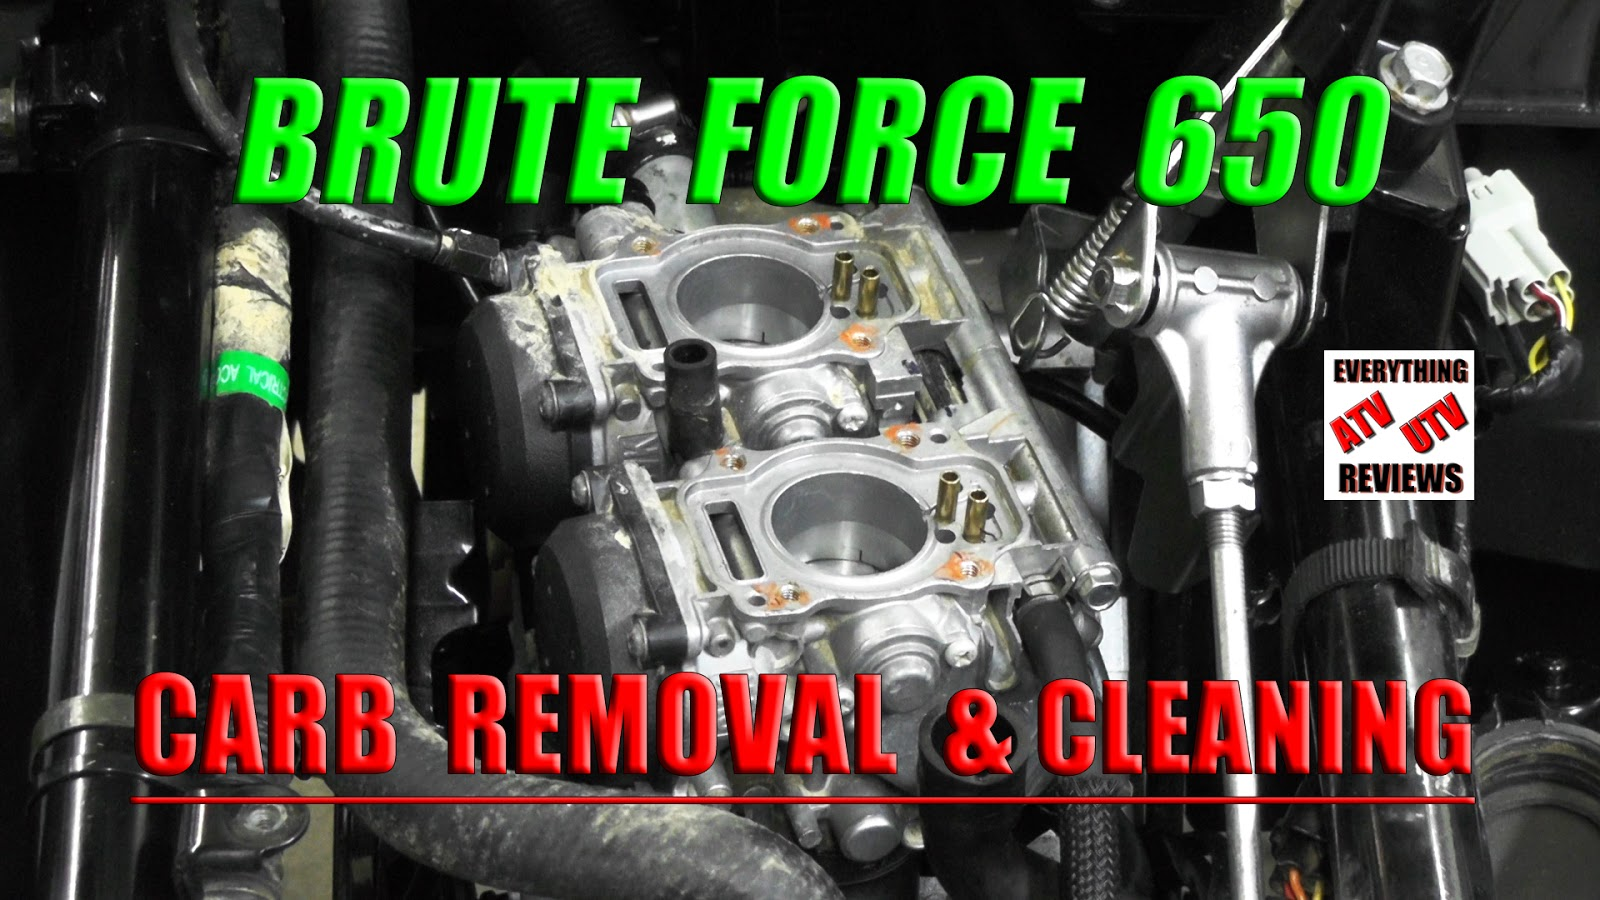 Hqdefault in addition S L likewise Kvf as well  besides Carb. on kawasaki prairie 650